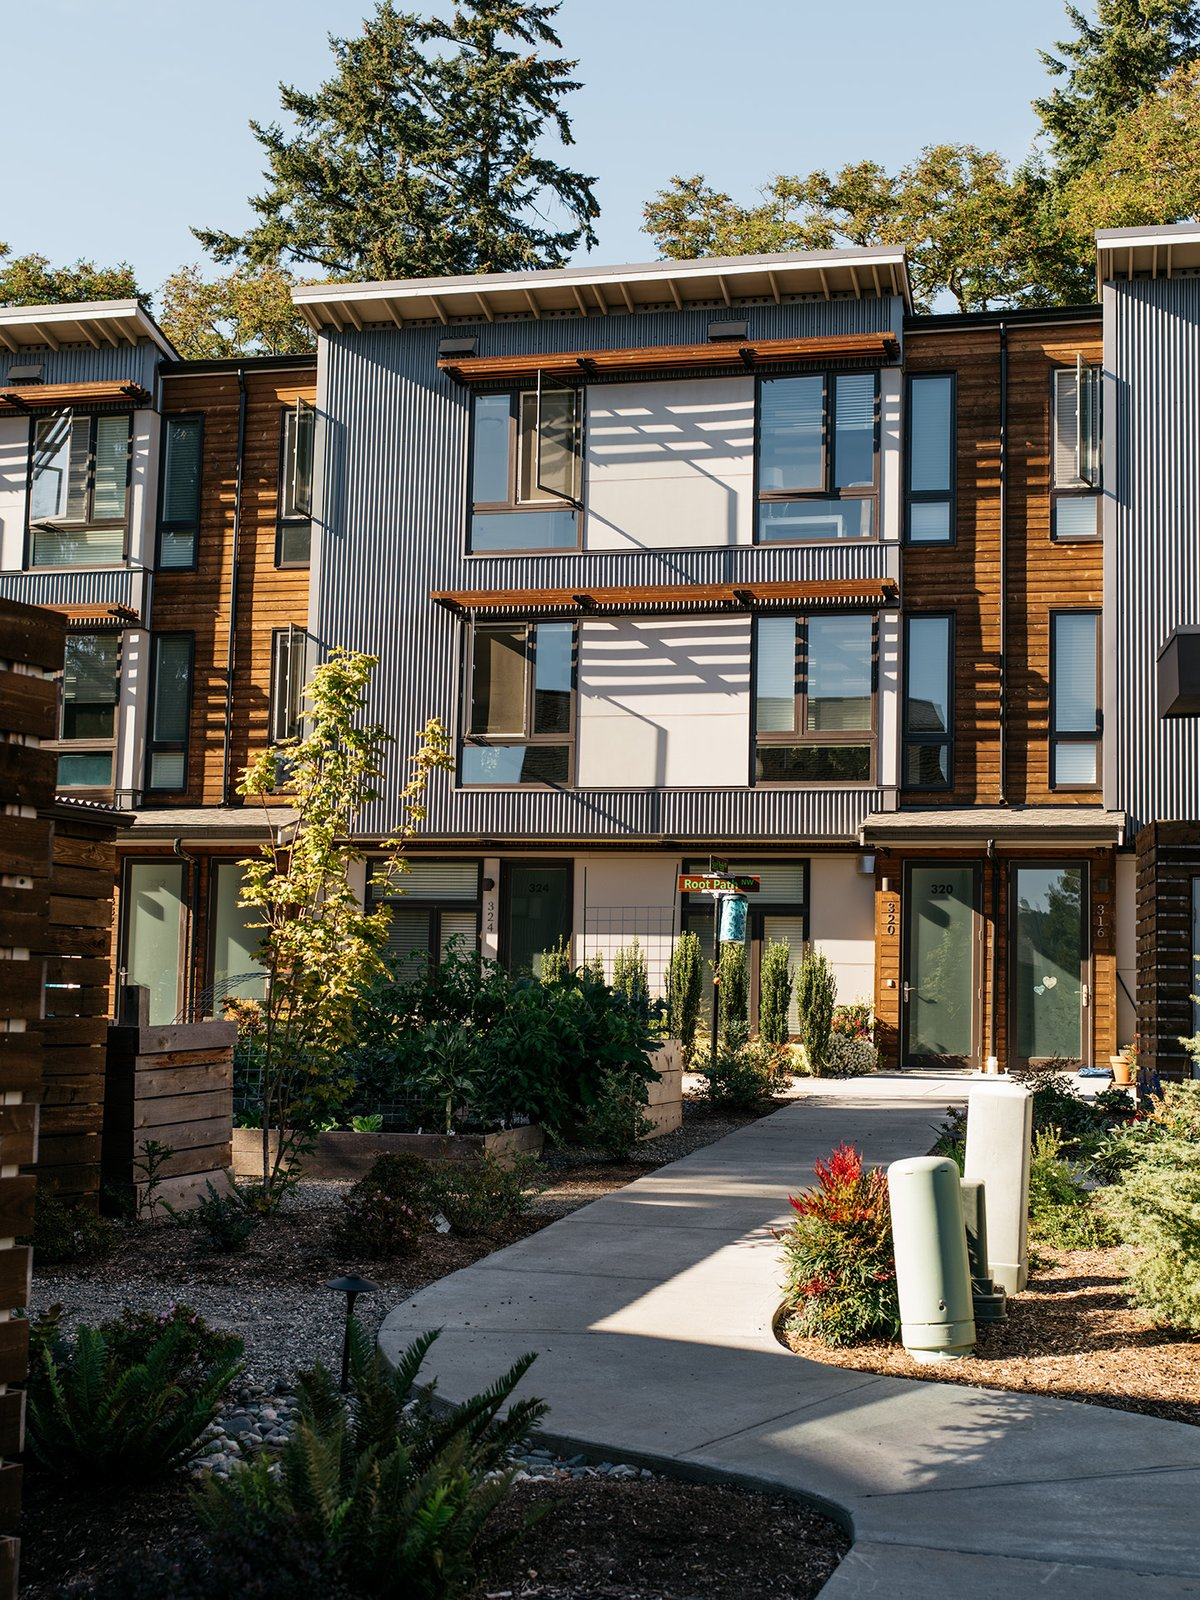 Phase one consists of 23 houses and two apartment buildings with 10 units each. The next two phases, The Grove and The Park, will offer a mix of town houses and condominium apartments. Some critics see these more conventional schemes as diluted versions of the original concept.  Photo 9 of 15 in It Takes a Village